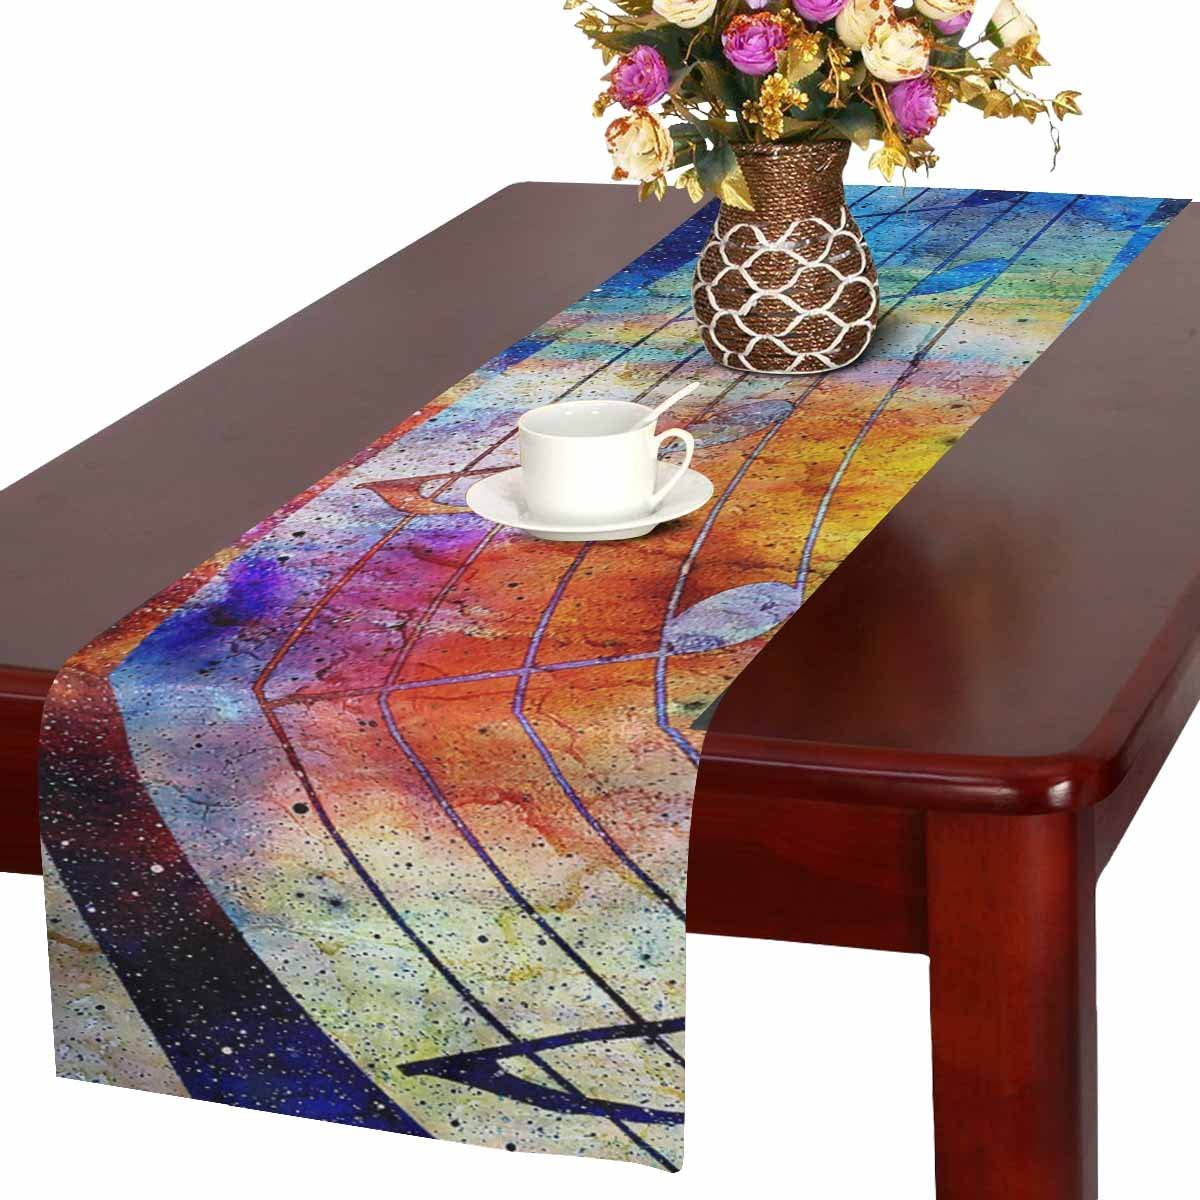 InterestPrint Grunge Retro Musical Background with Music Notes Table Runner  Linen & Cotton Cloth Placemat Home Decor for Kitchen Dining Wedding Party  ...